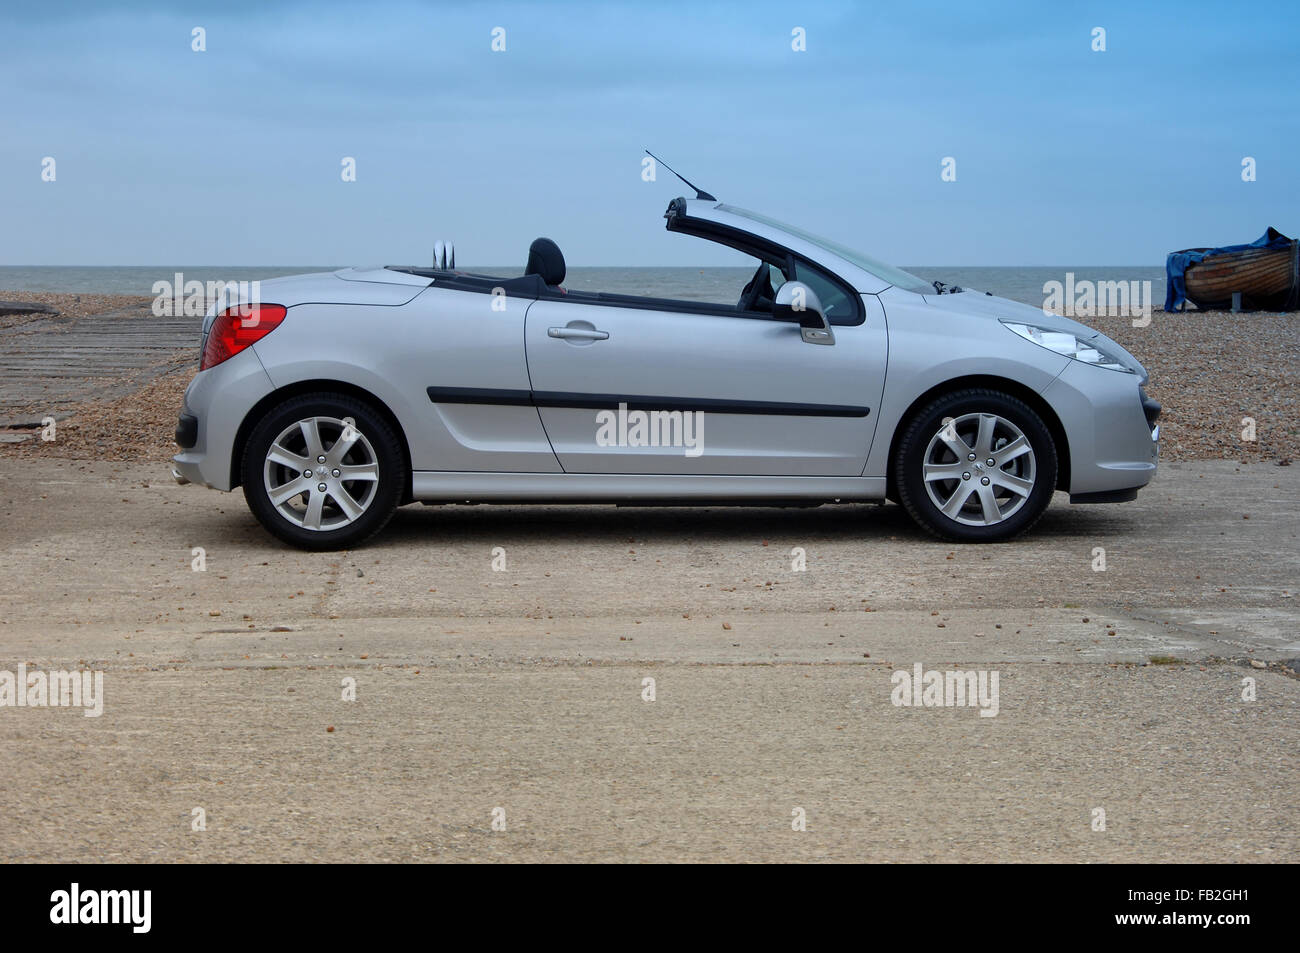 peugeot 206 cc coupe convertible open top car with folding metal stock photo royalty free. Black Bedroom Furniture Sets. Home Design Ideas